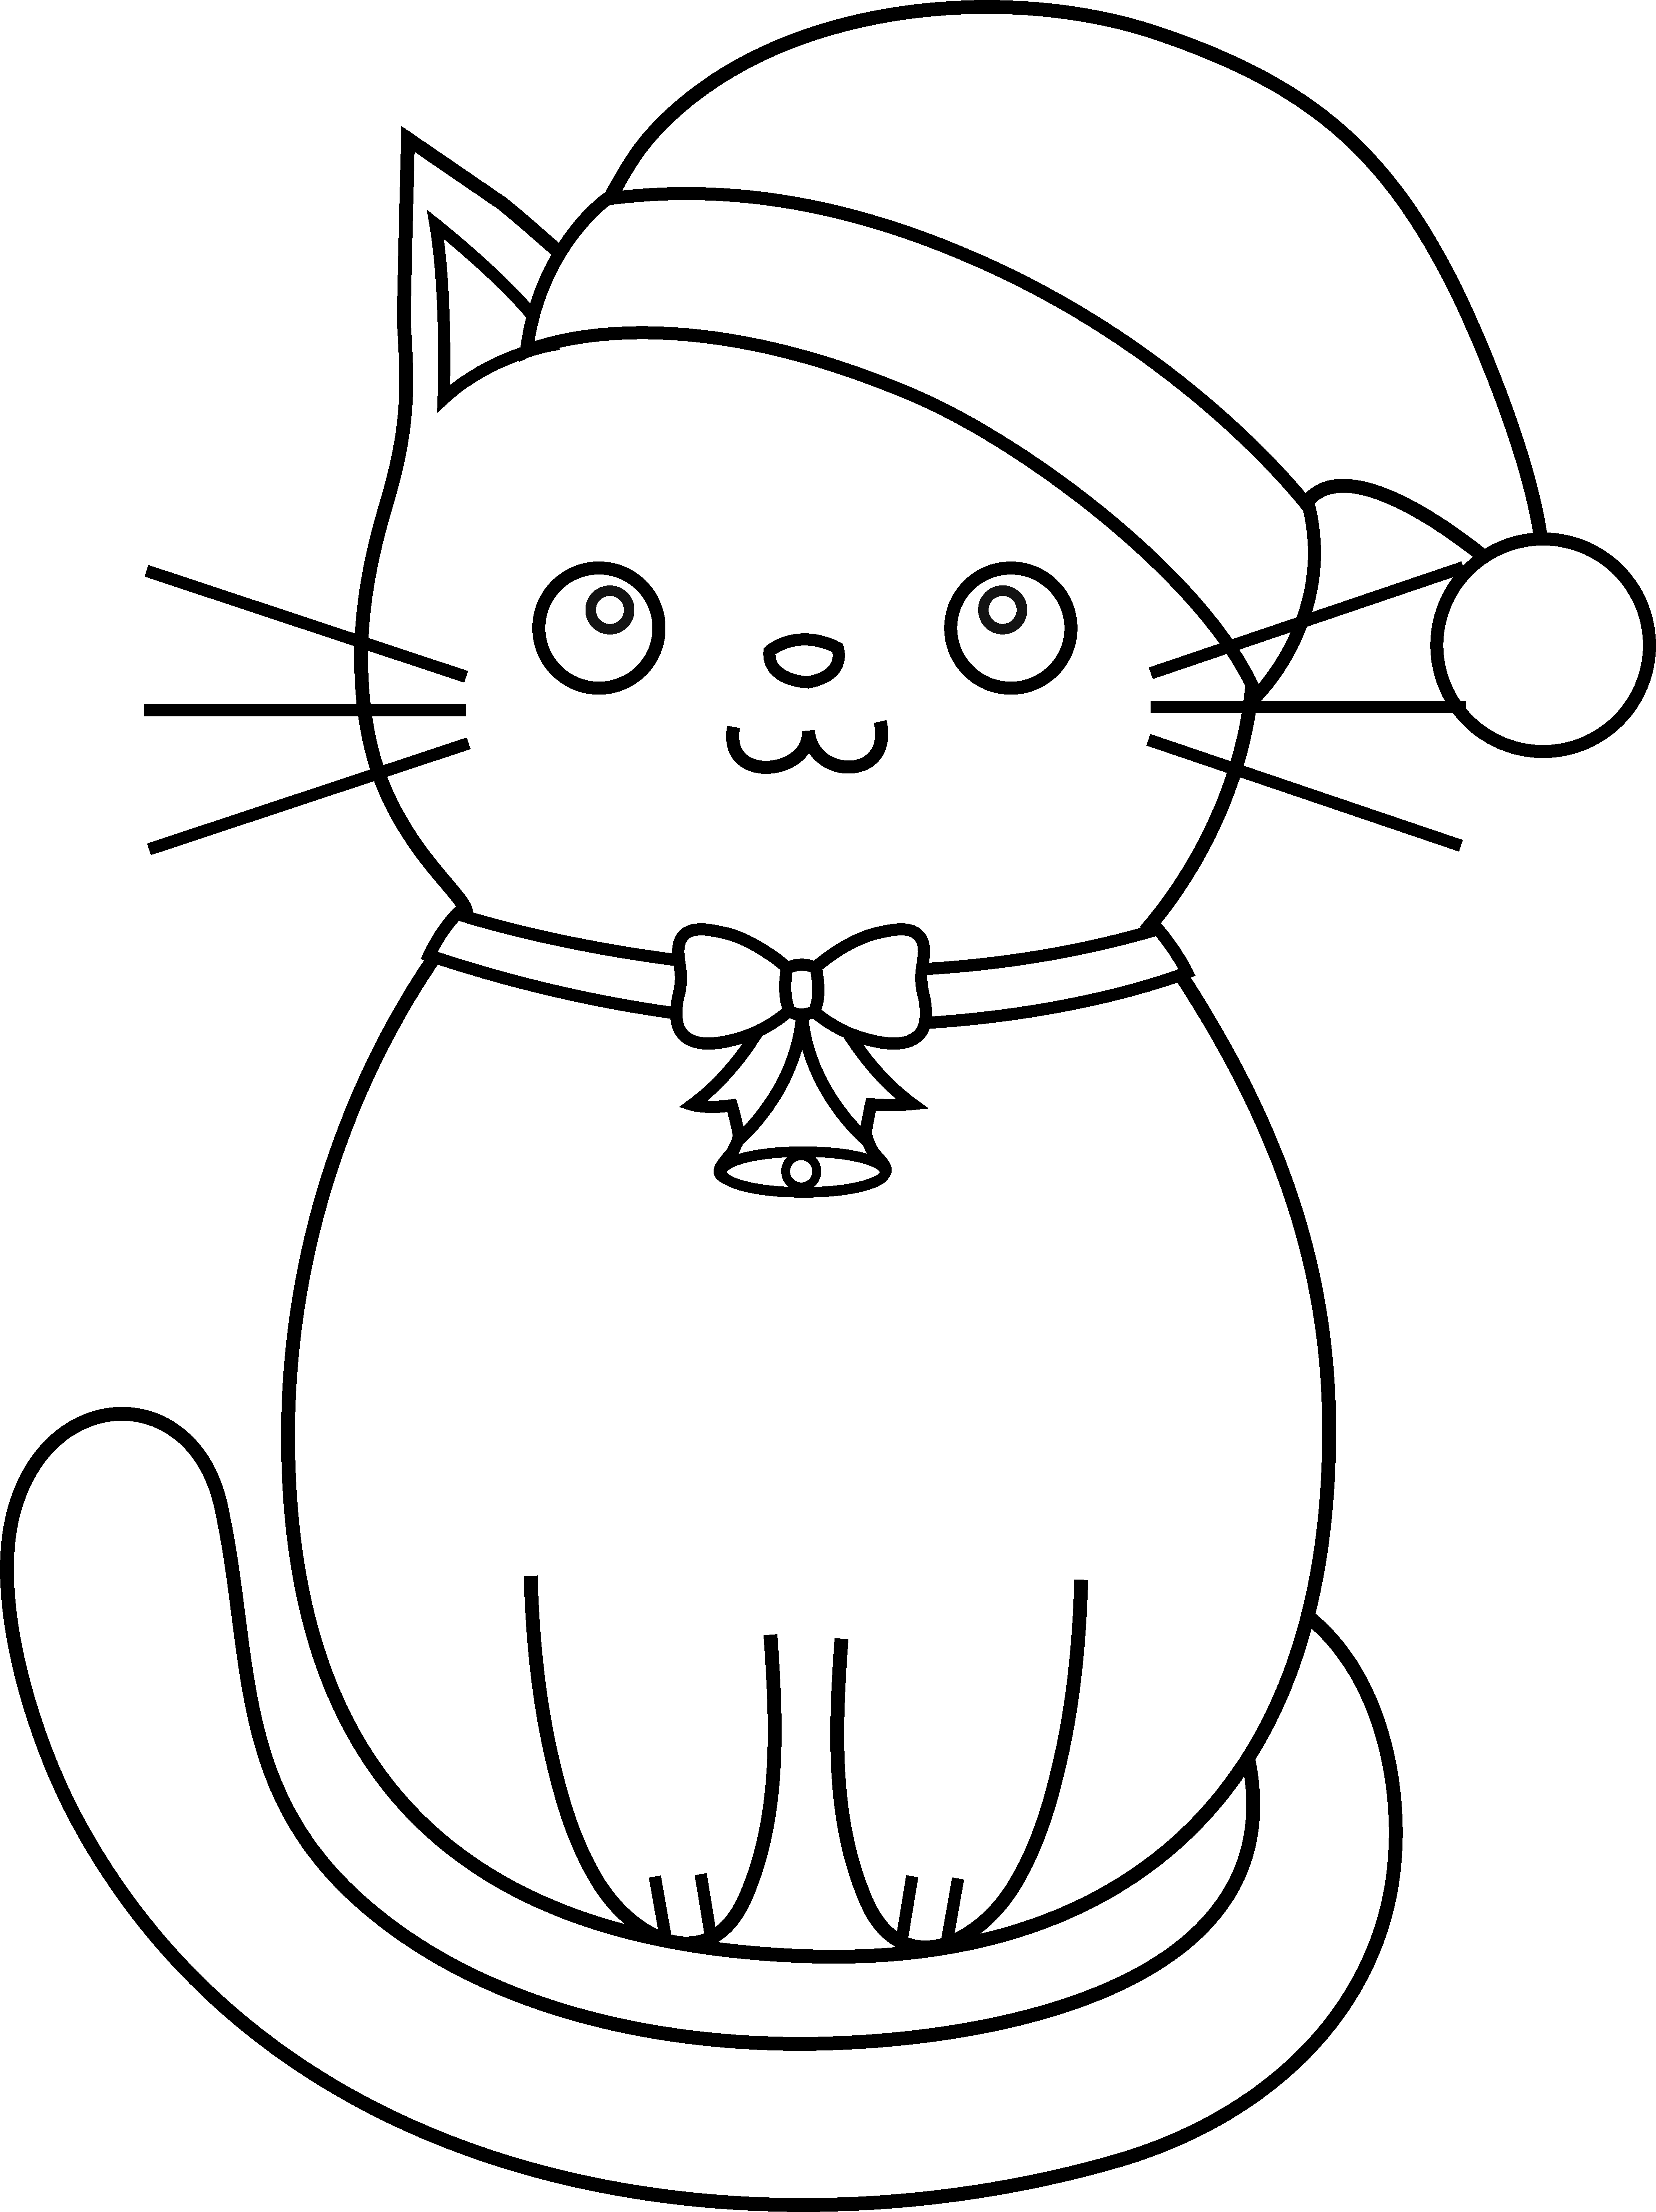 cat pictures to color and print kitty cat coloring pages coloring pages for kids color print pictures to cat and